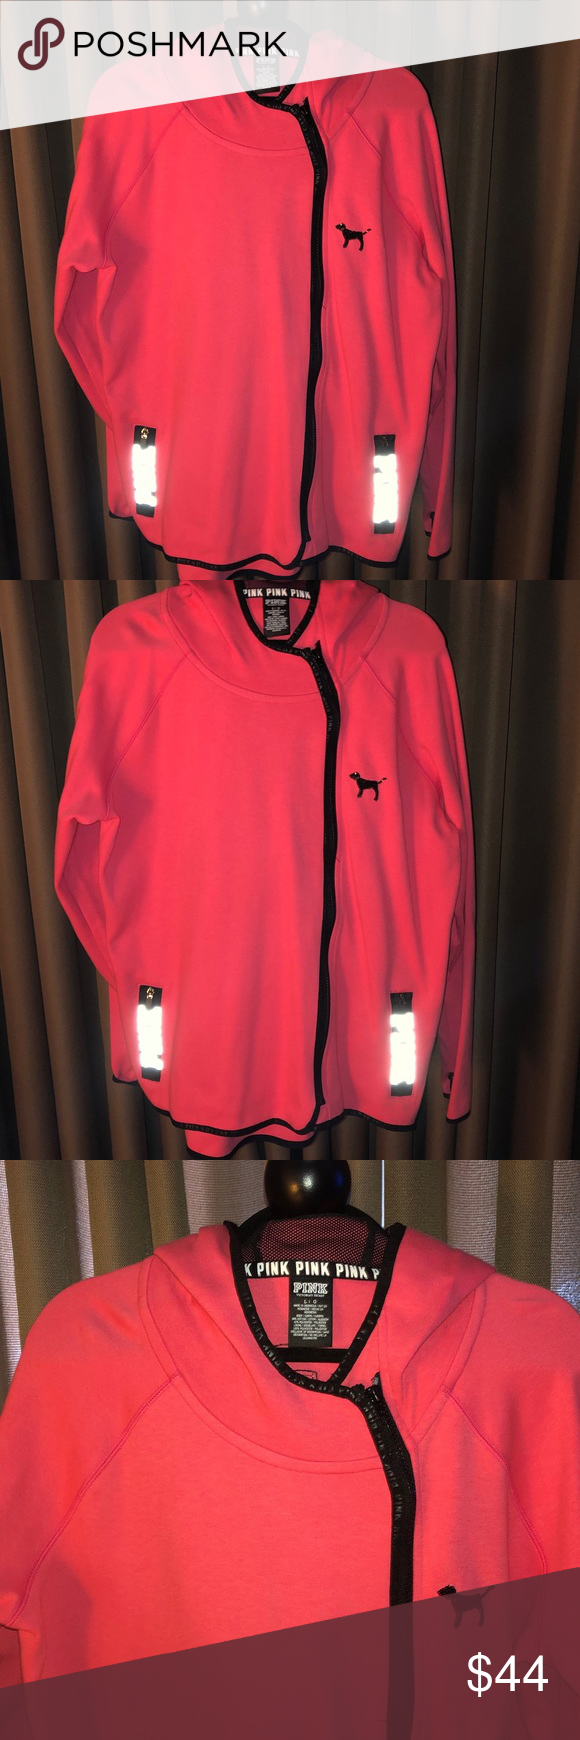 Pink By Victoria's Secret Charcoal Gray Sweatshirt Size Medium Warm And Windproof Clothing, Shoes & Accessories